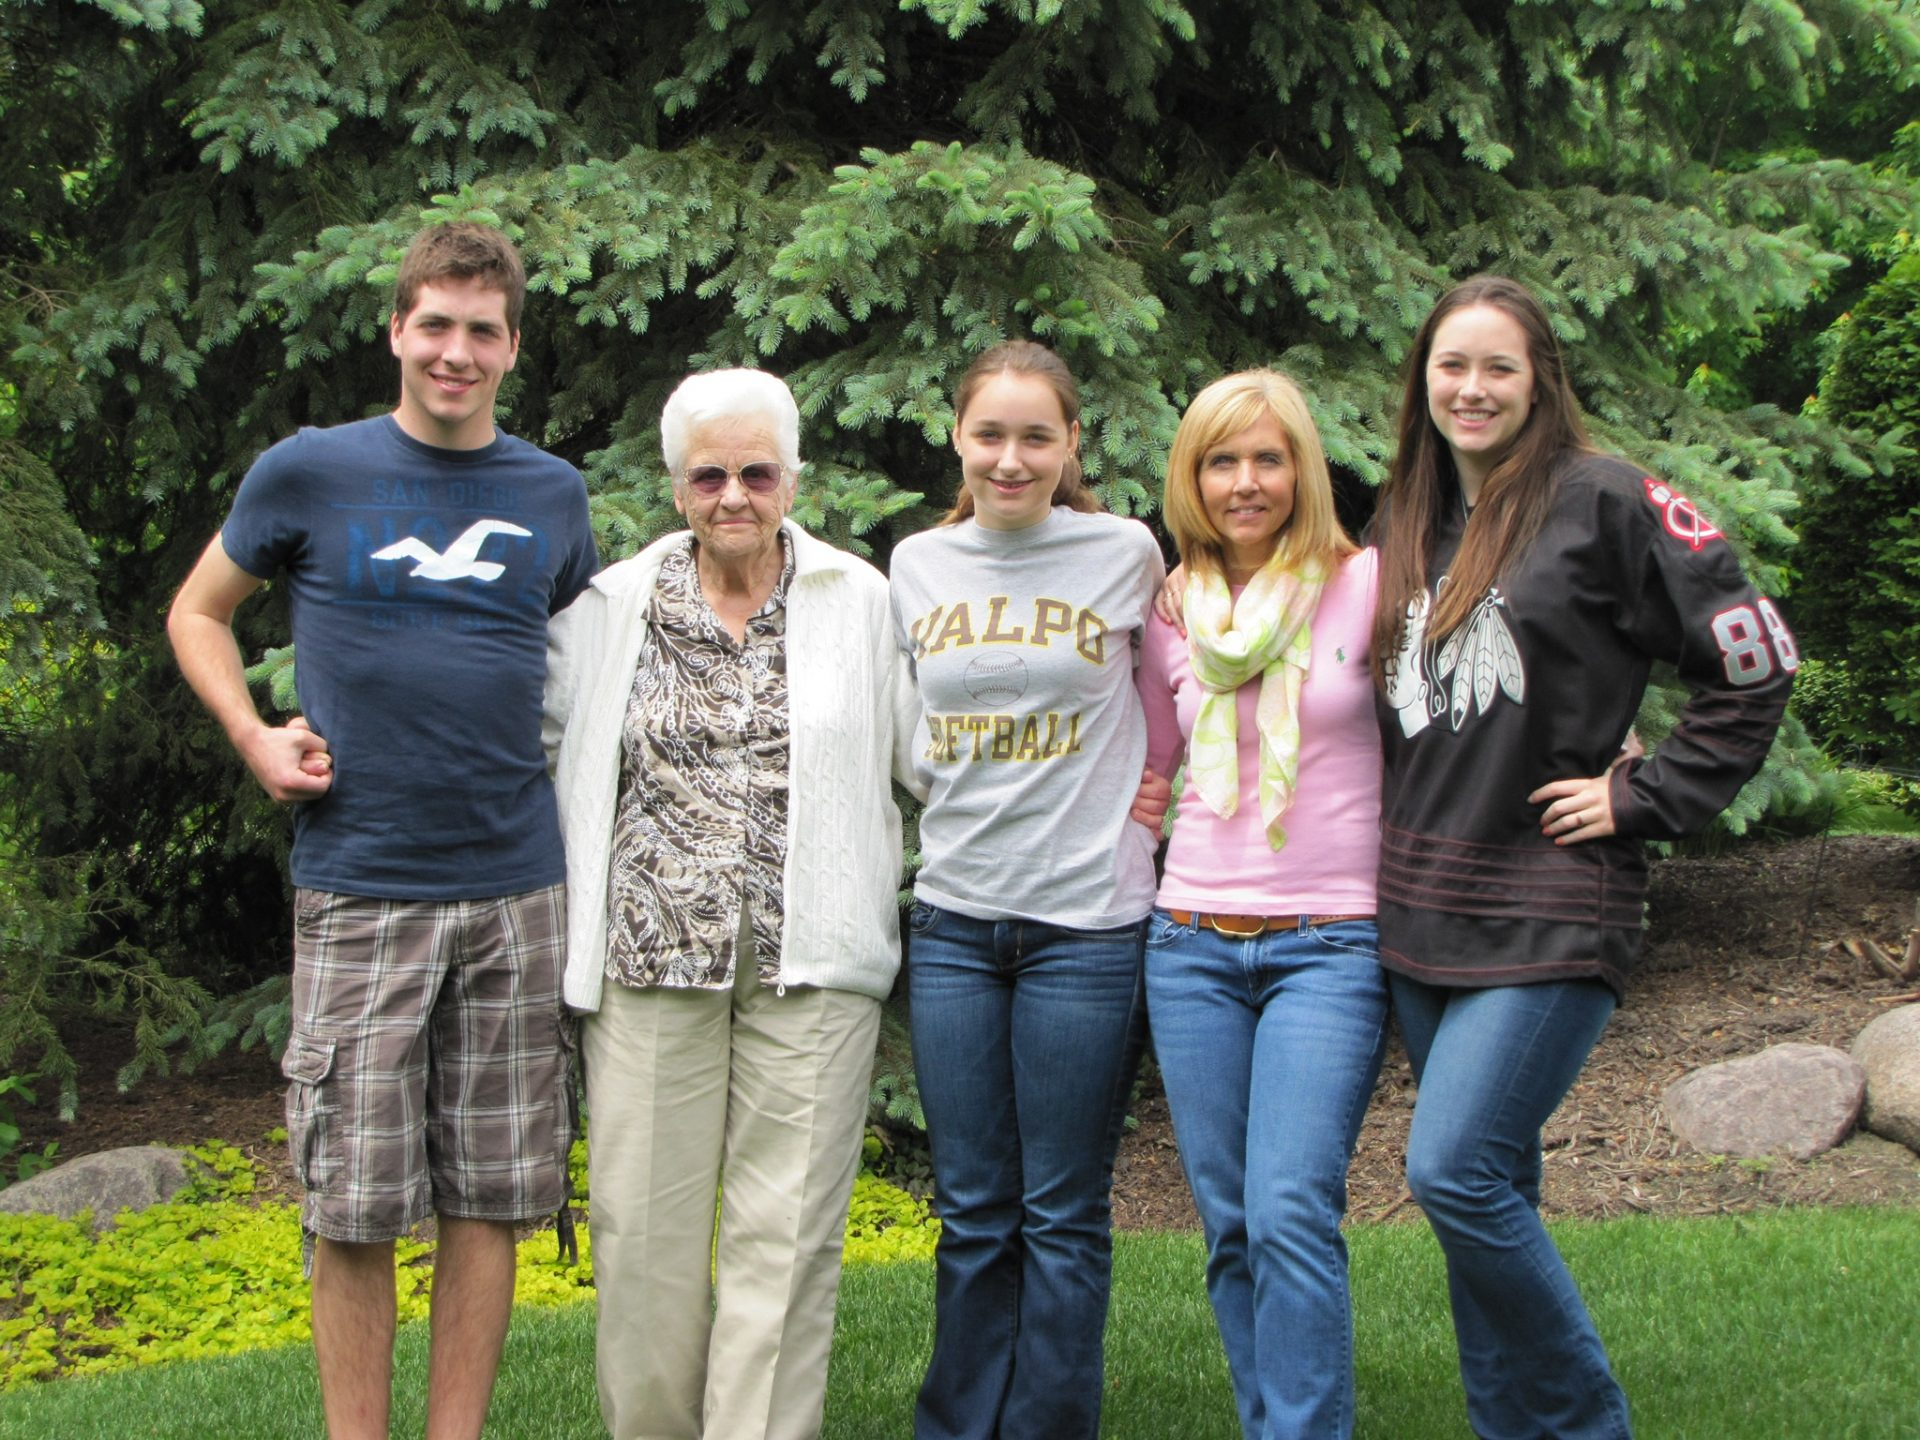 Granny, Leslie, Shane, Riley, and Courtney